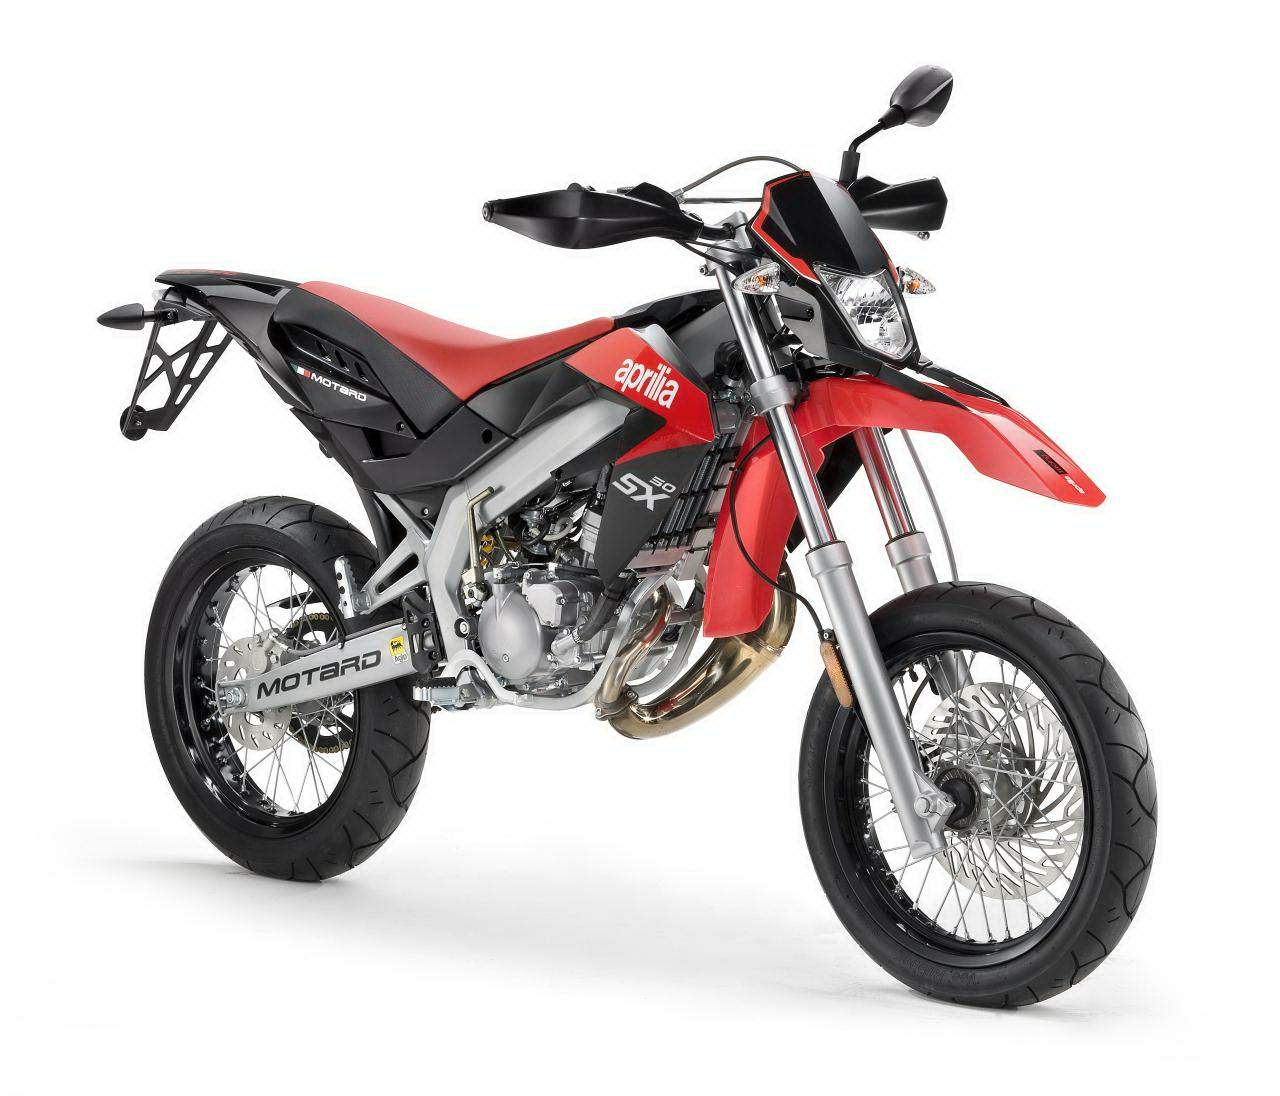 aprilia sx 50 specs 2009 2010 autoevolution. Black Bedroom Furniture Sets. Home Design Ideas